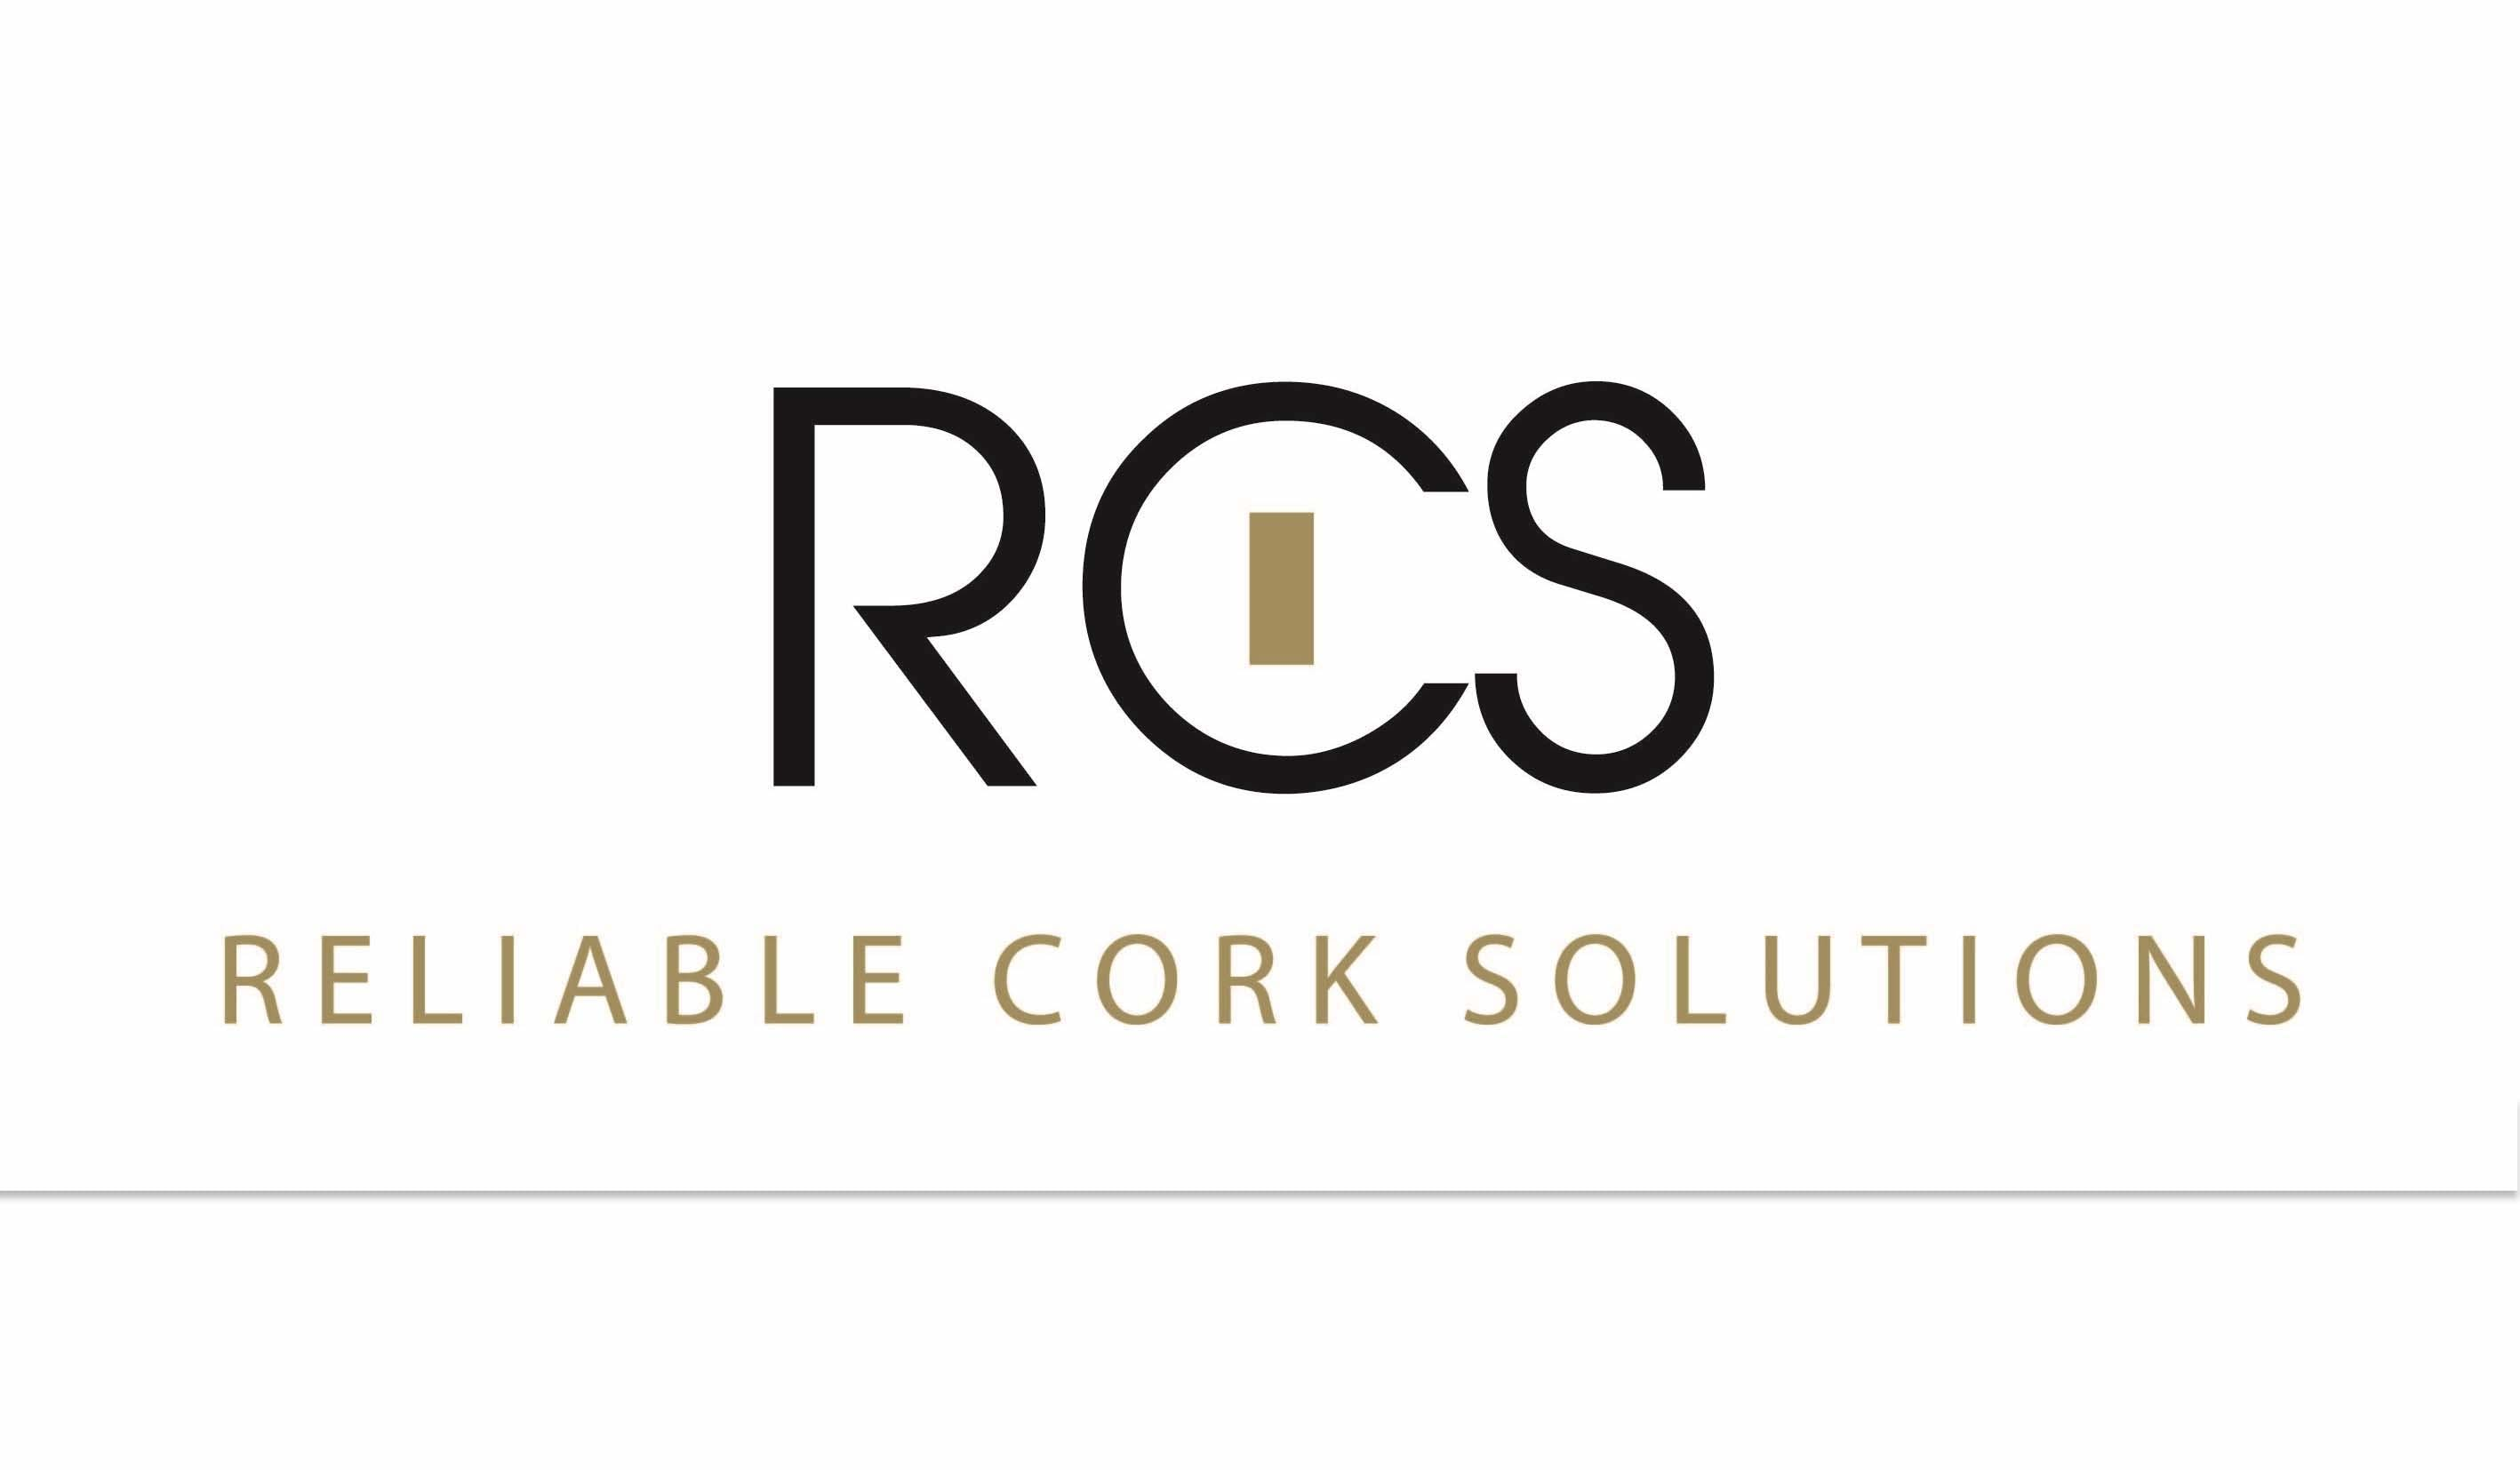 Reliable Cork Solutions